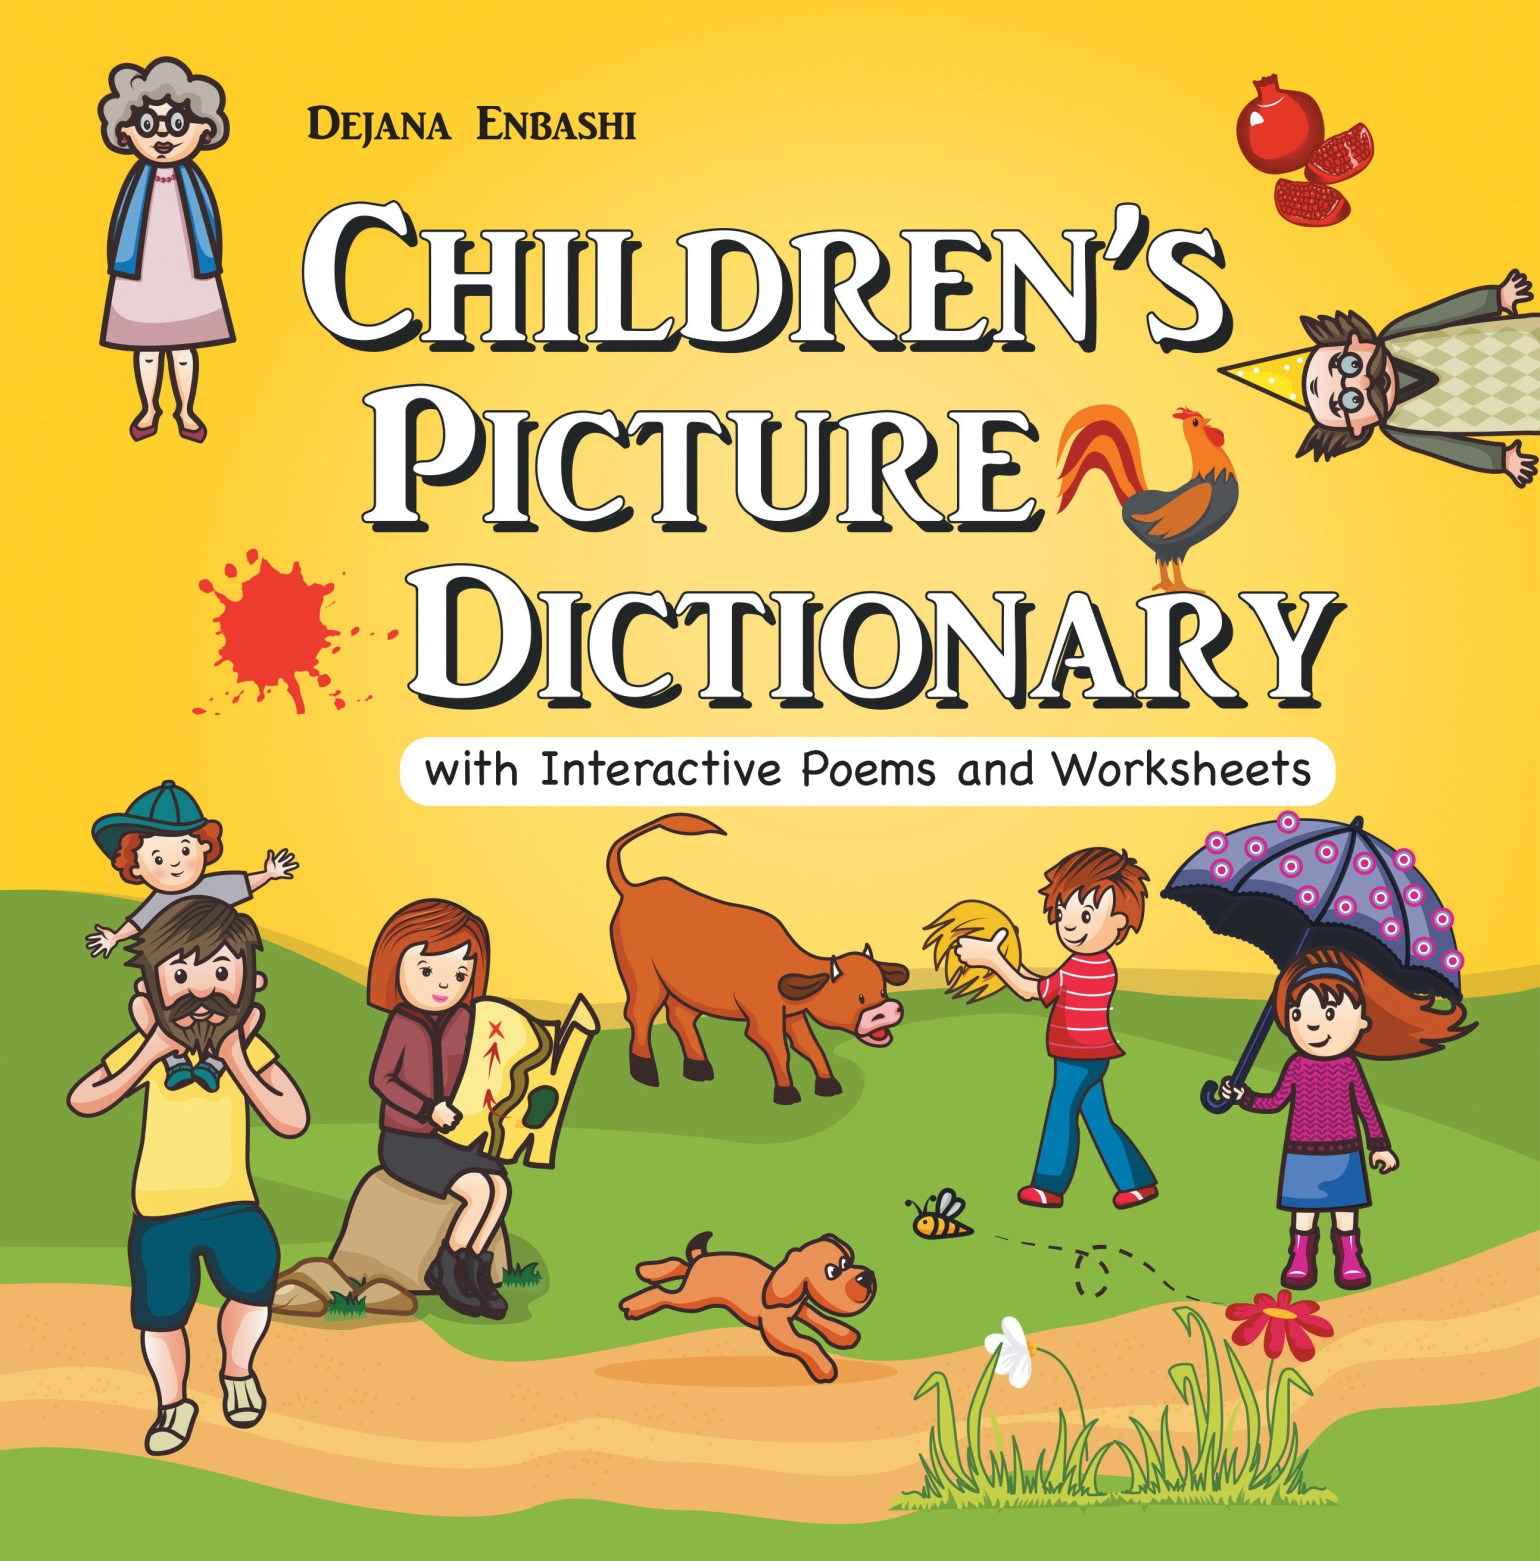 Children's Picture Dictionary with Interactive Poems and Worksheets (Paperback) 978-1642544541